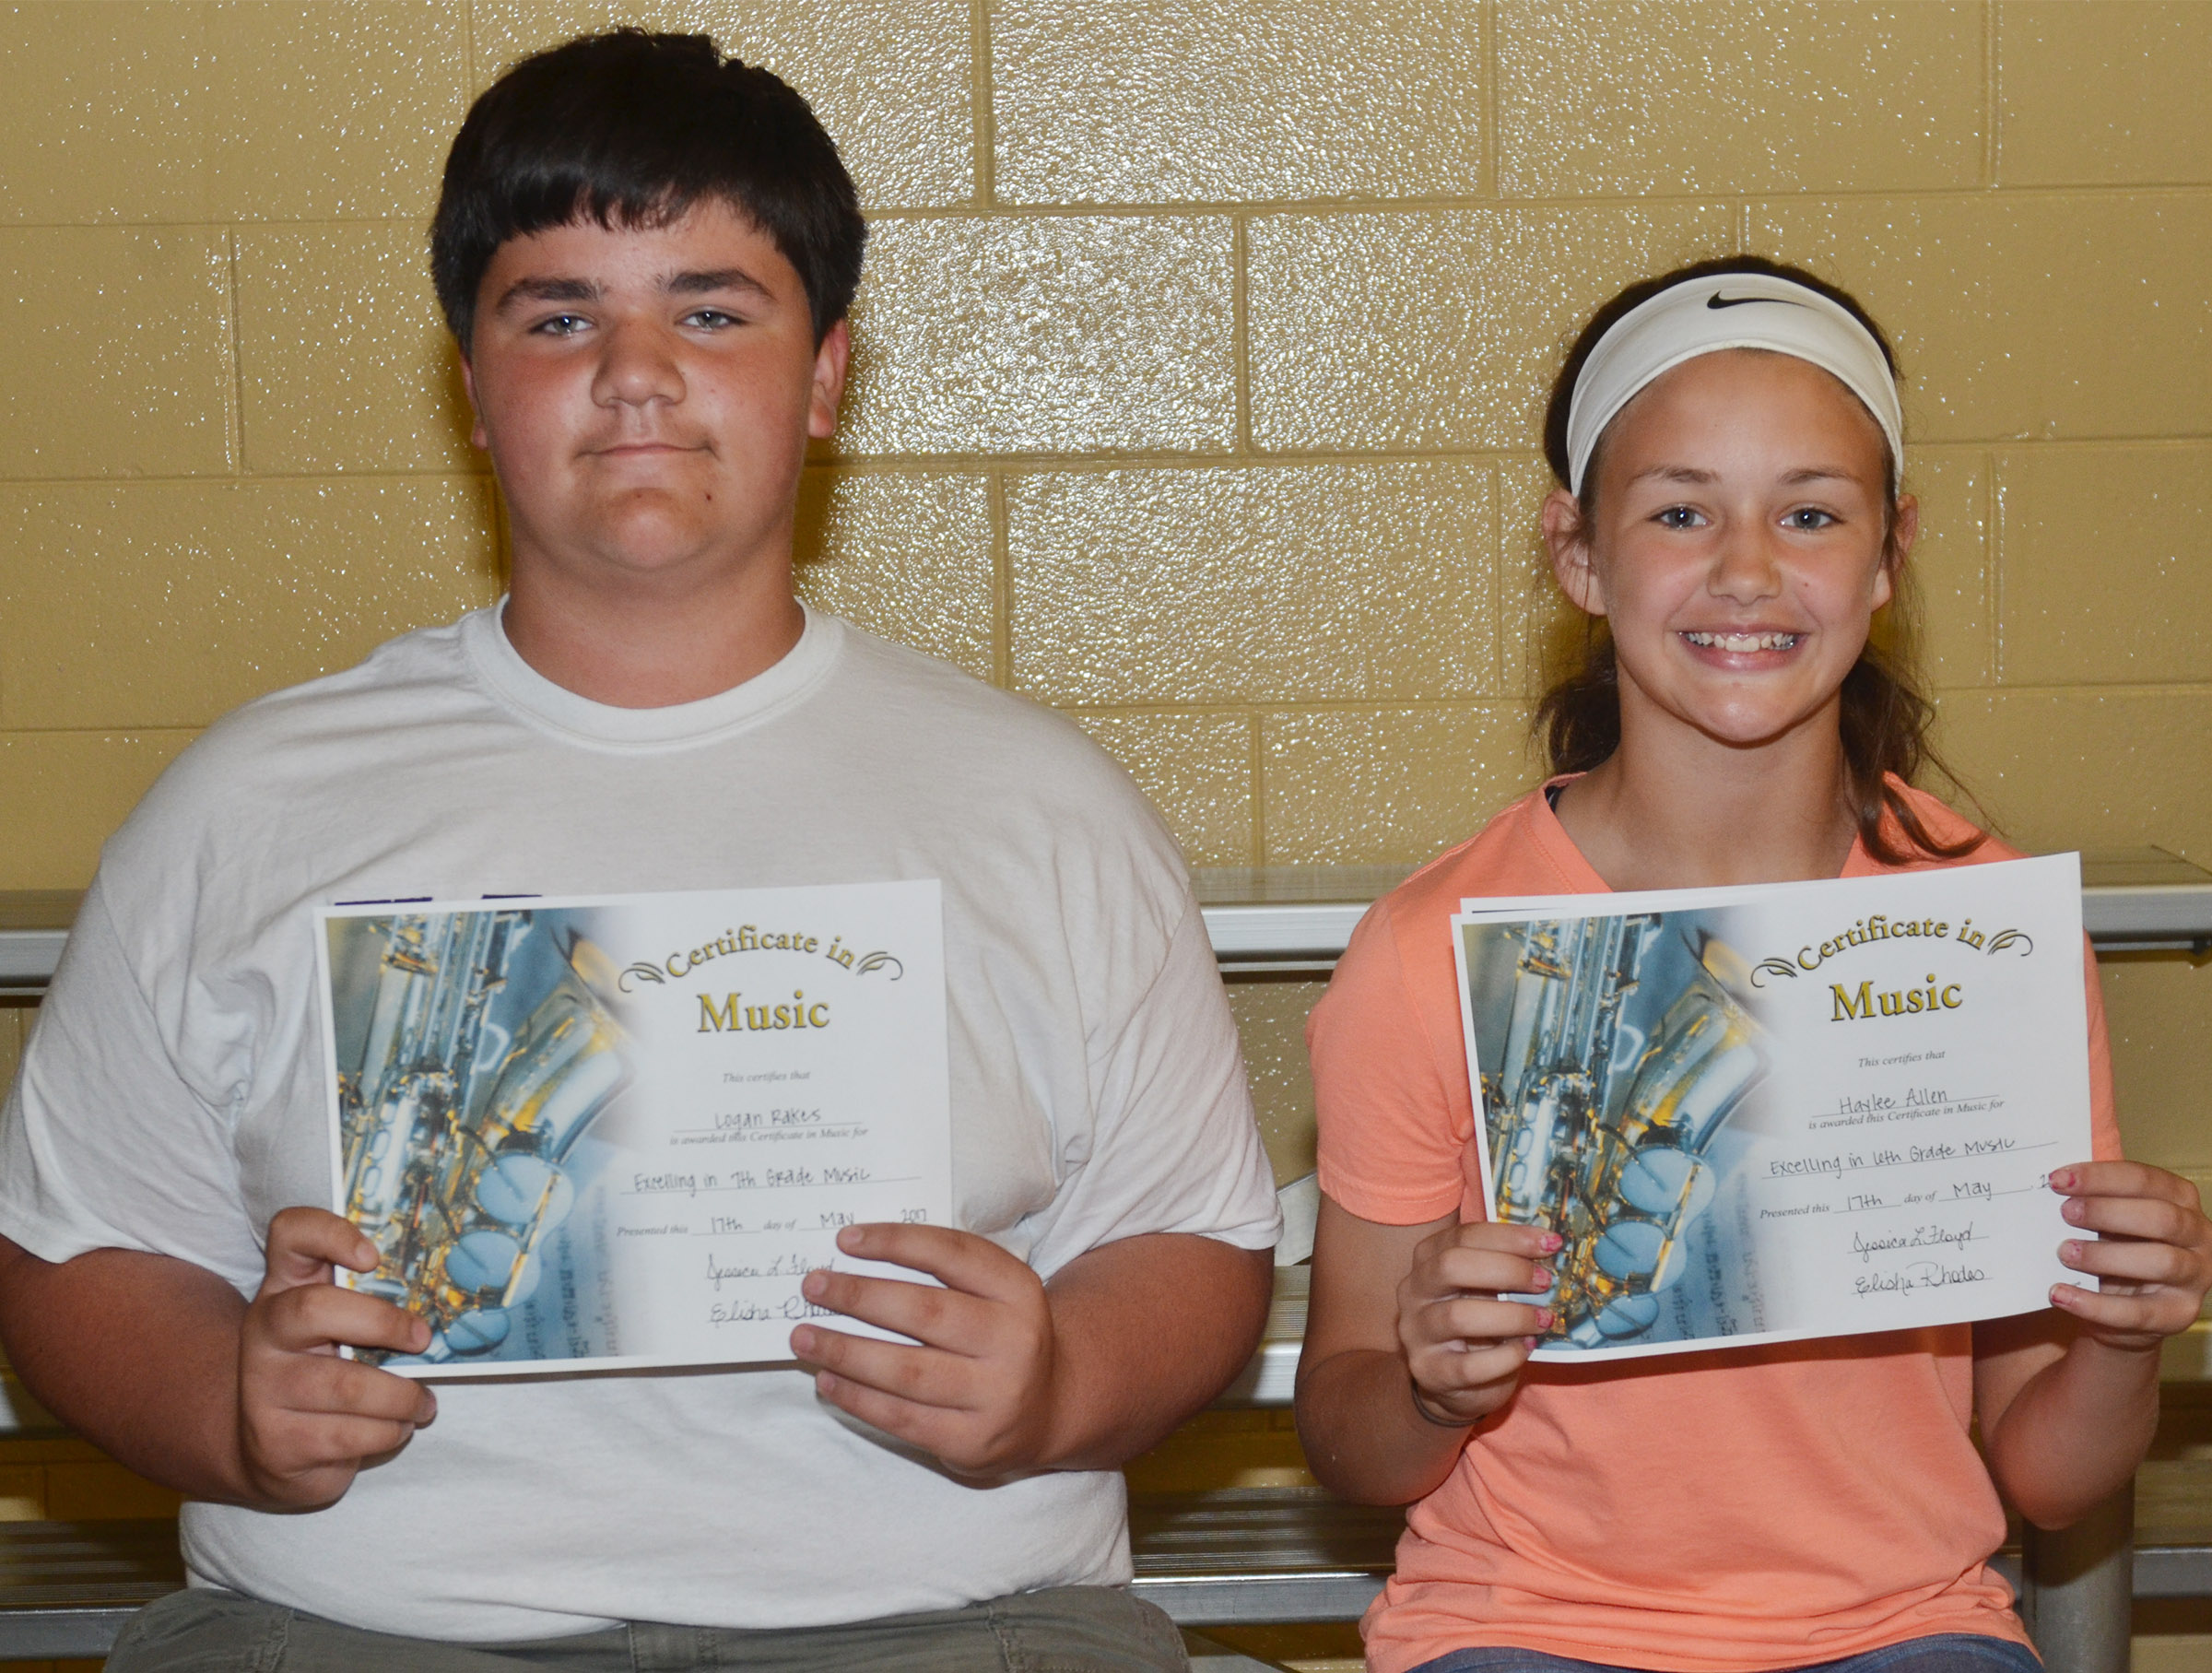 General music awards went to seventh-grader Logan Rakes and sixth-grader Haylee Allen.